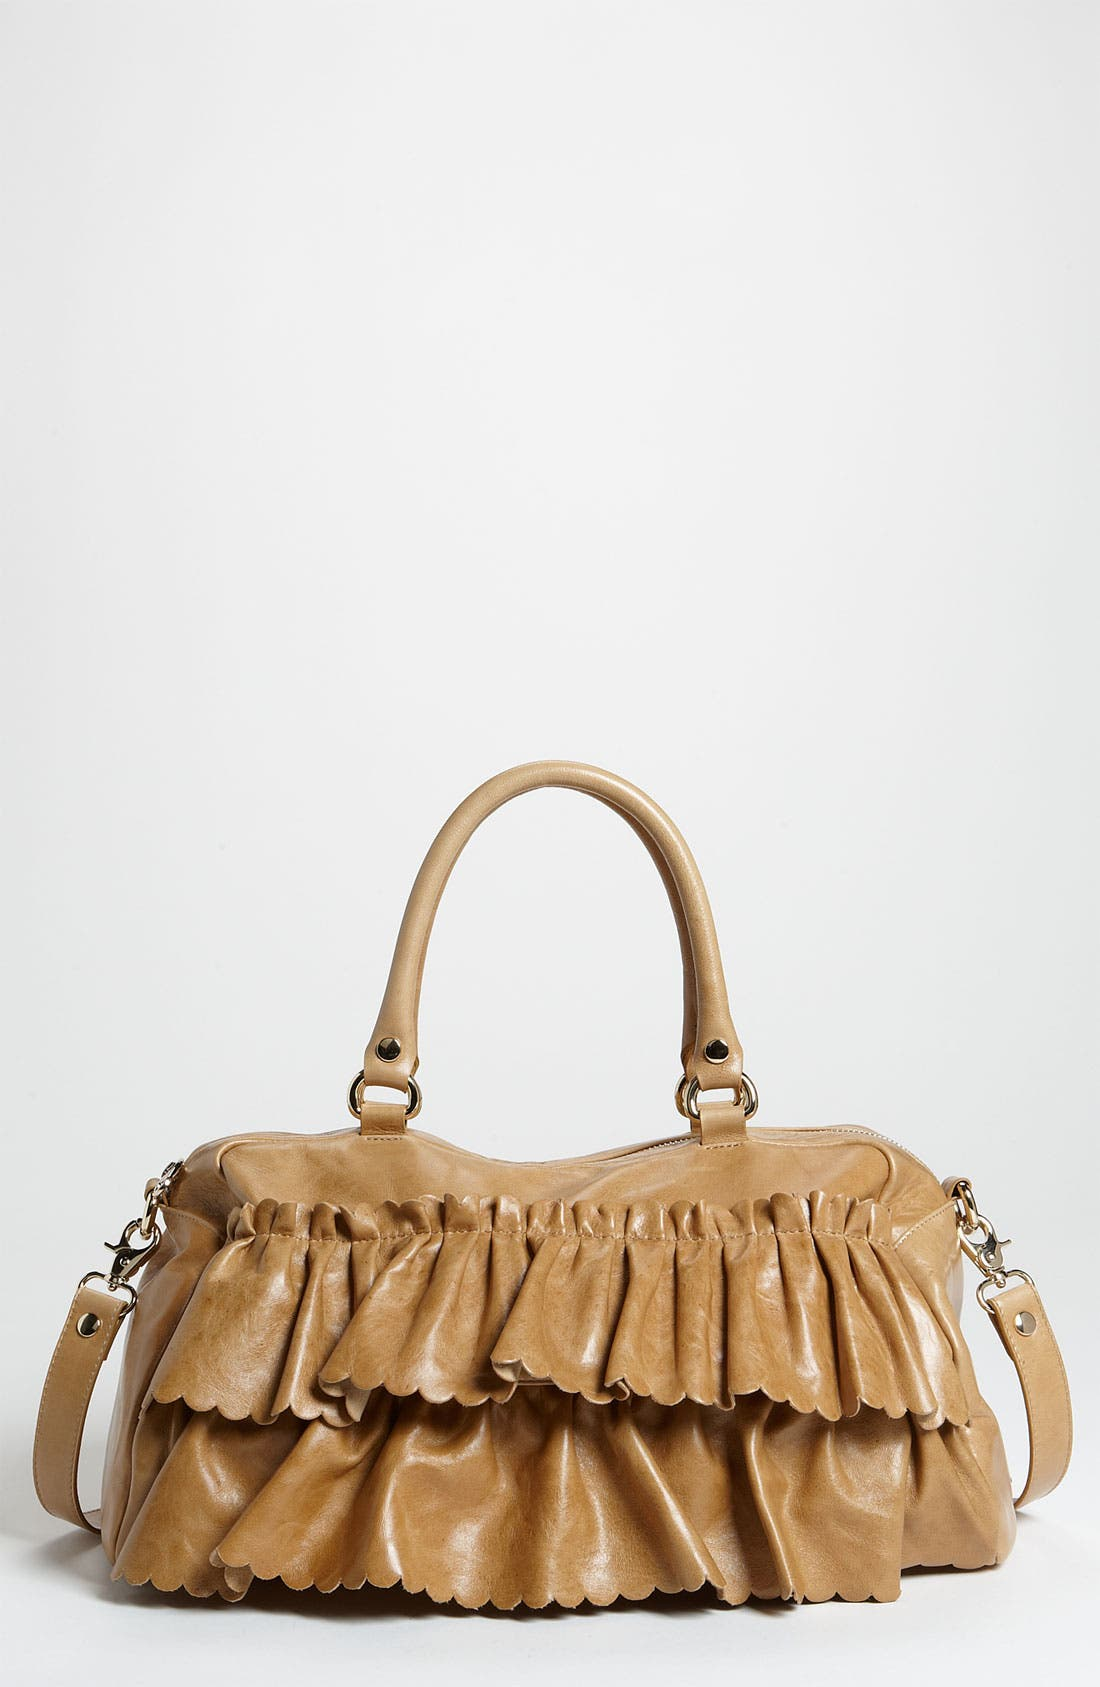 Alternate Image 1 Selected - RED Valentino 'Vintage Ruffle' Lambskin Leather Satchel